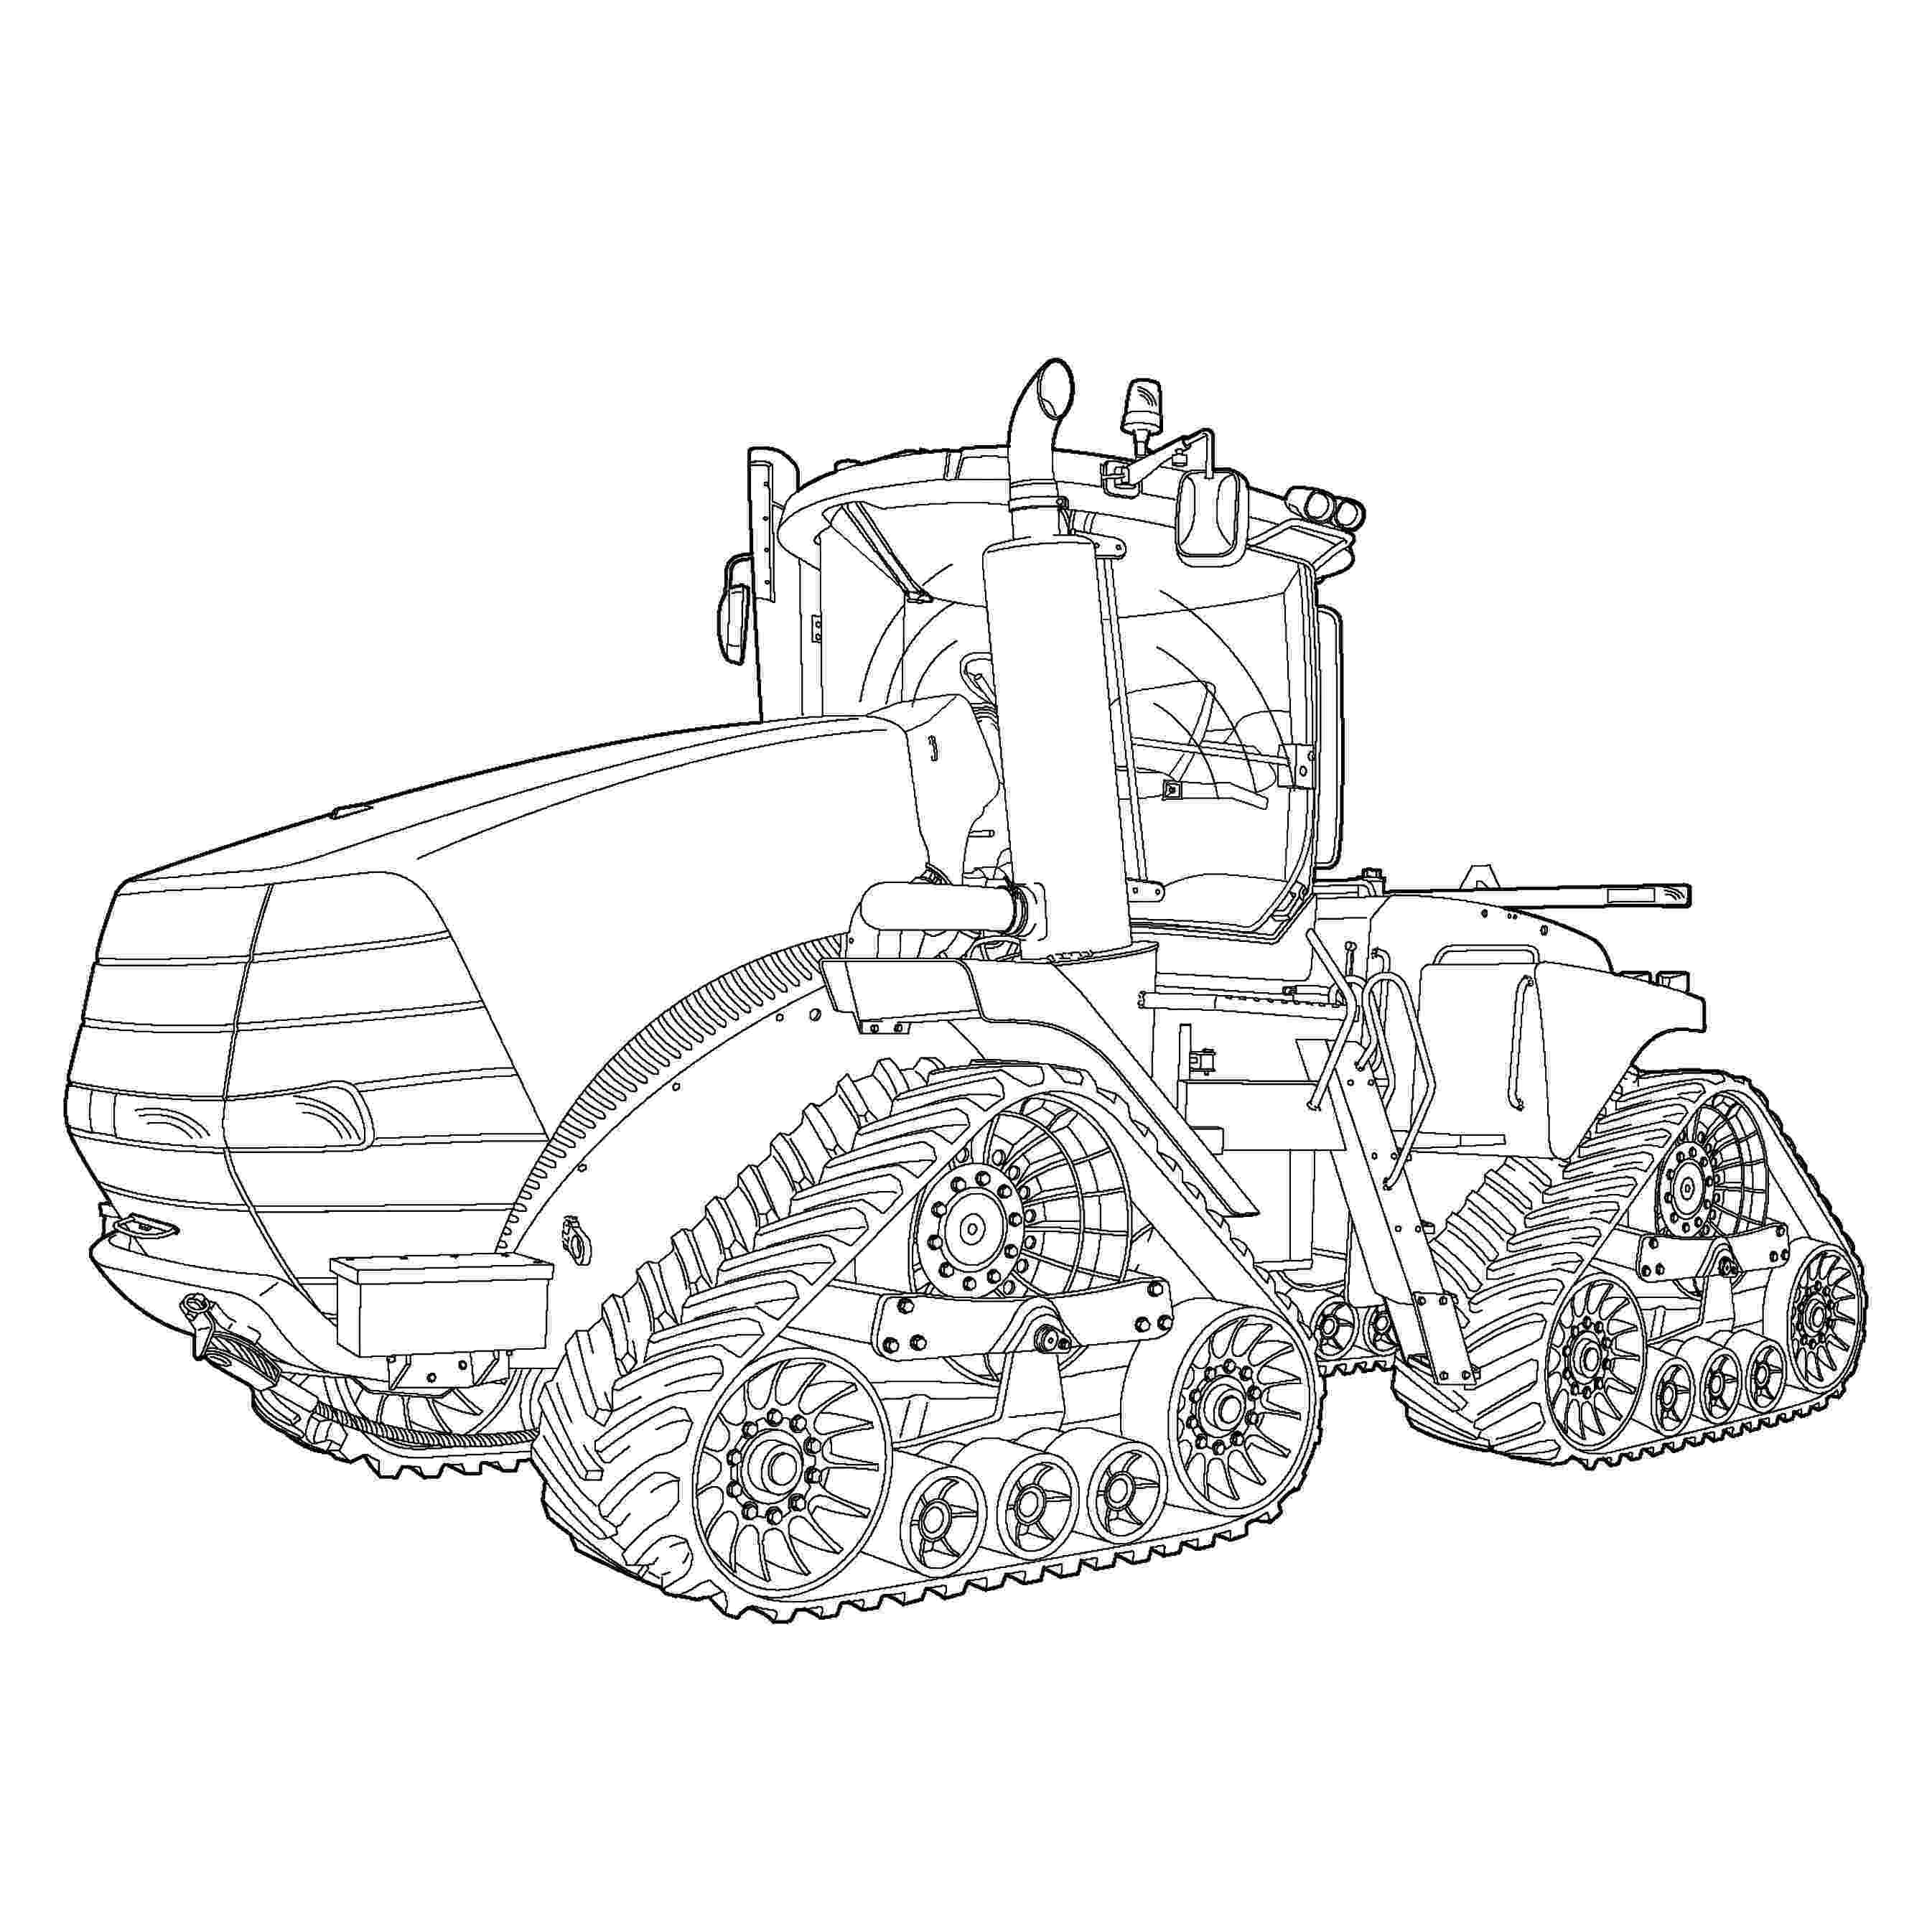 tractor coloring sheet art of the tractor coloring book octane press tractor sheet coloring